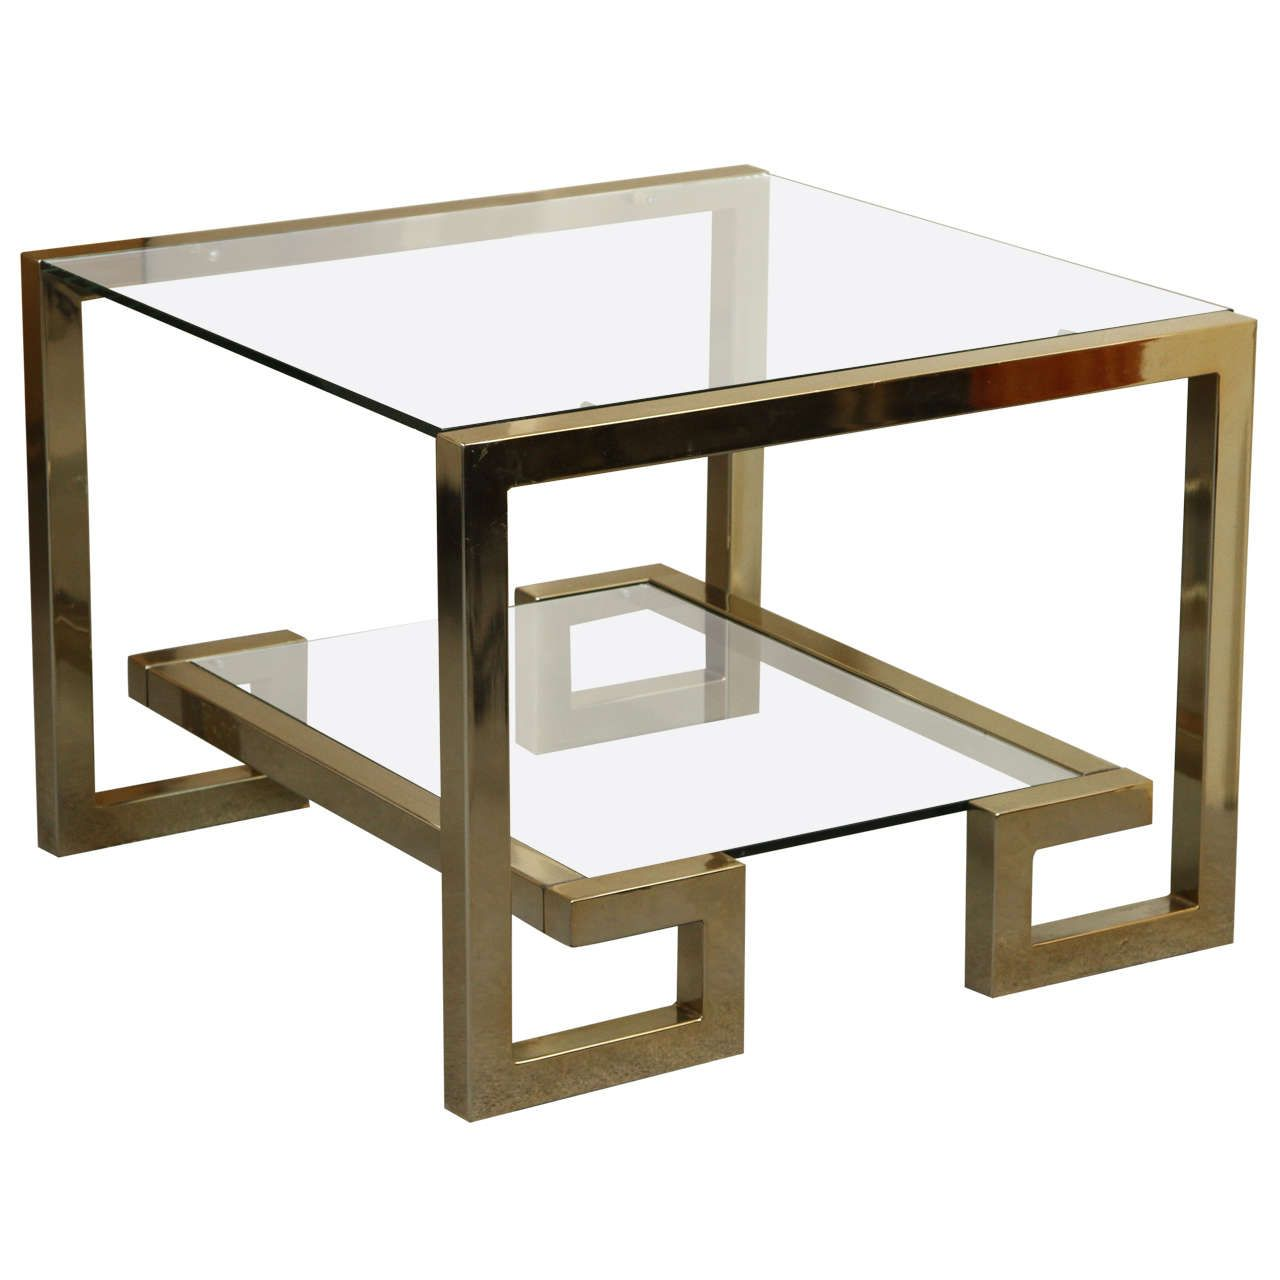 Stylish Greek Key Brass And Glass Coffee Table Metal Furniture